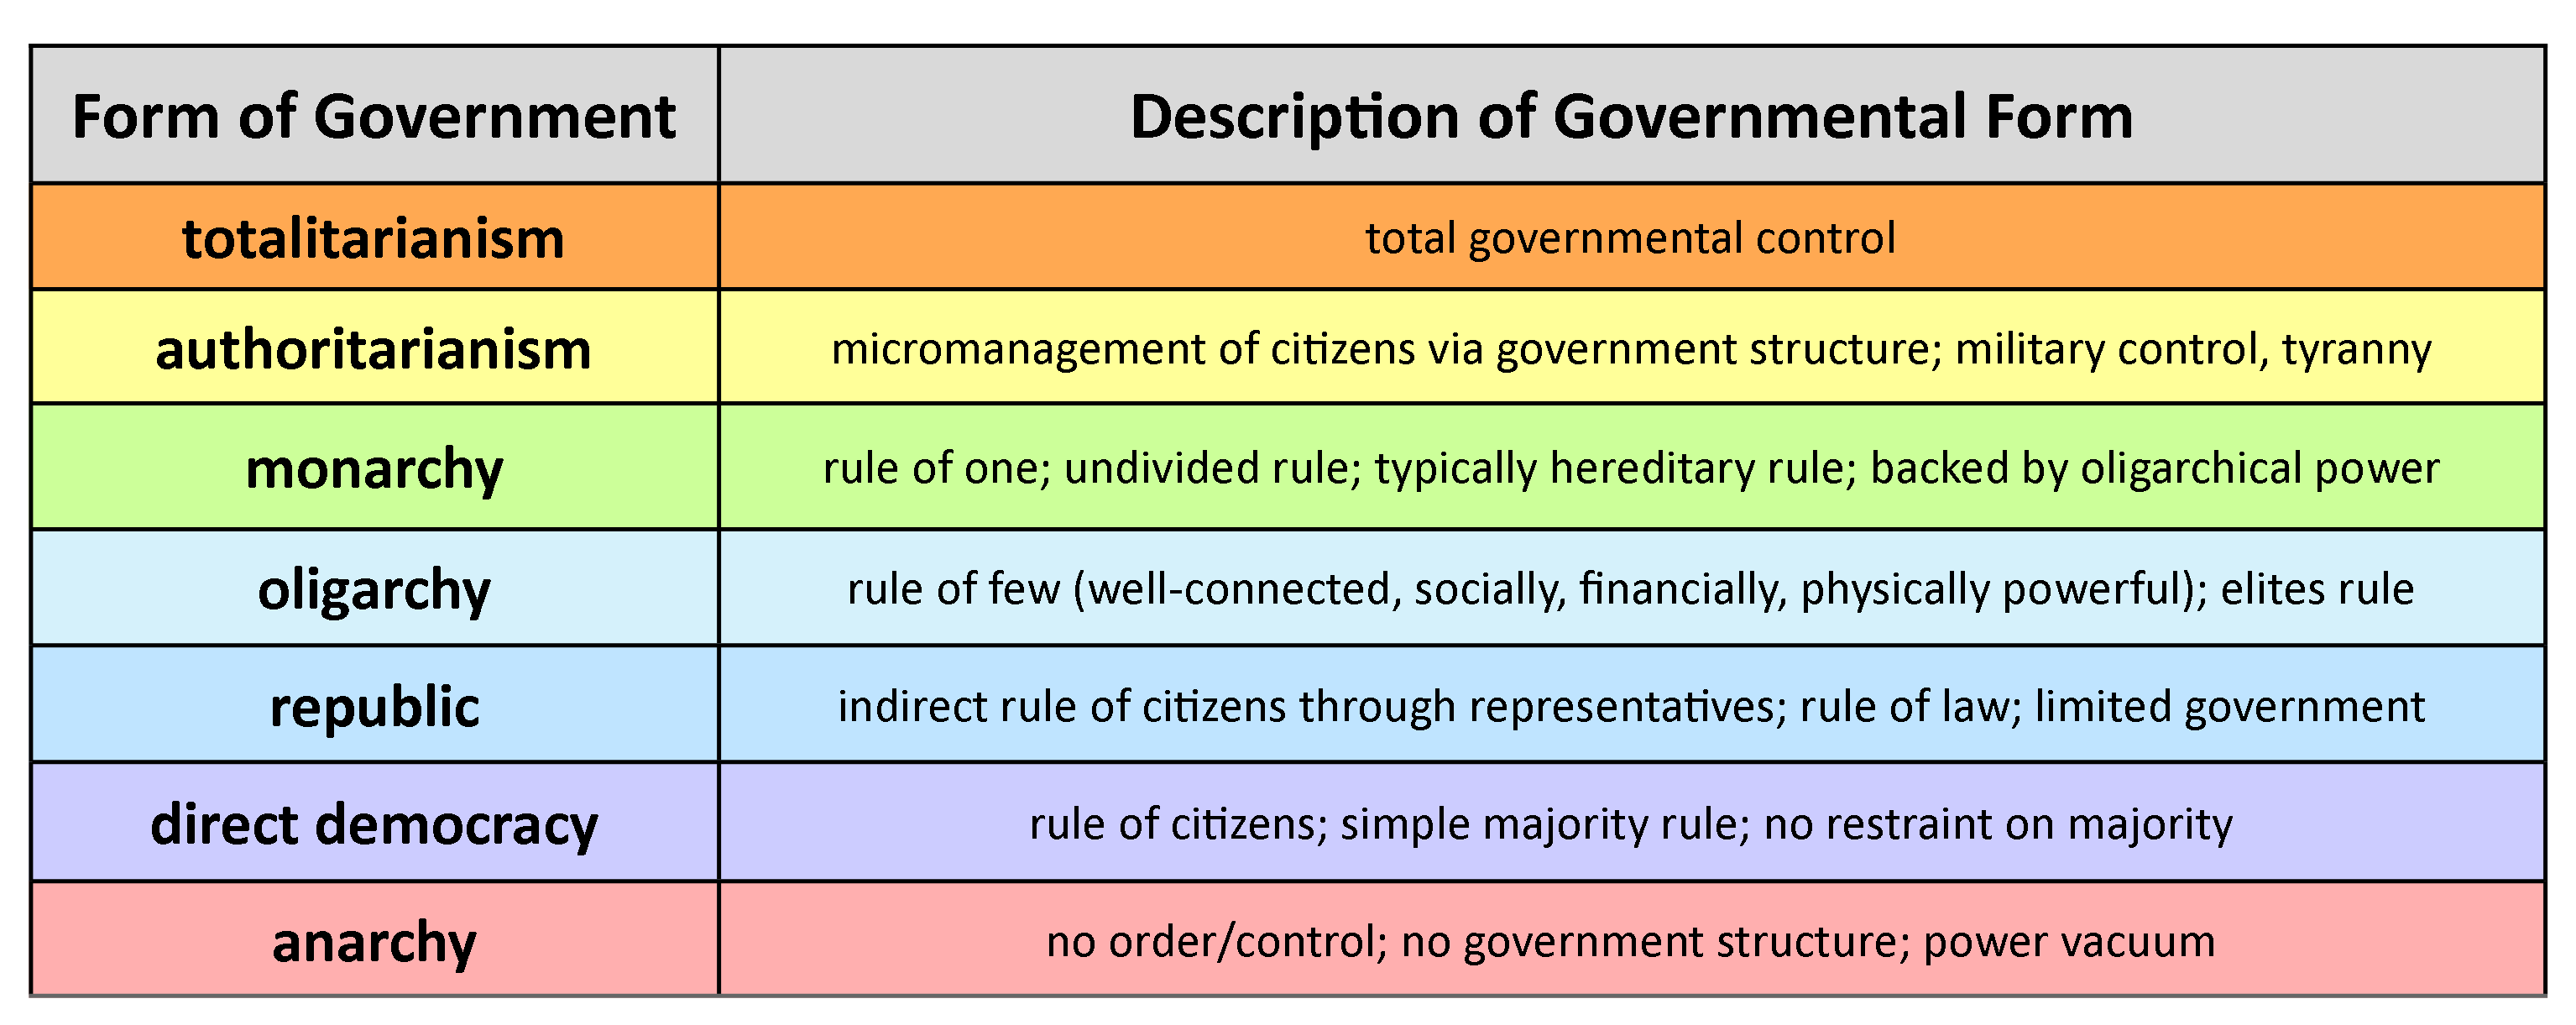 Chart of governmental forms including totalitarianism, authoritarianism, monarchy, oligarchy, republic, direct democracy, and anarchy.